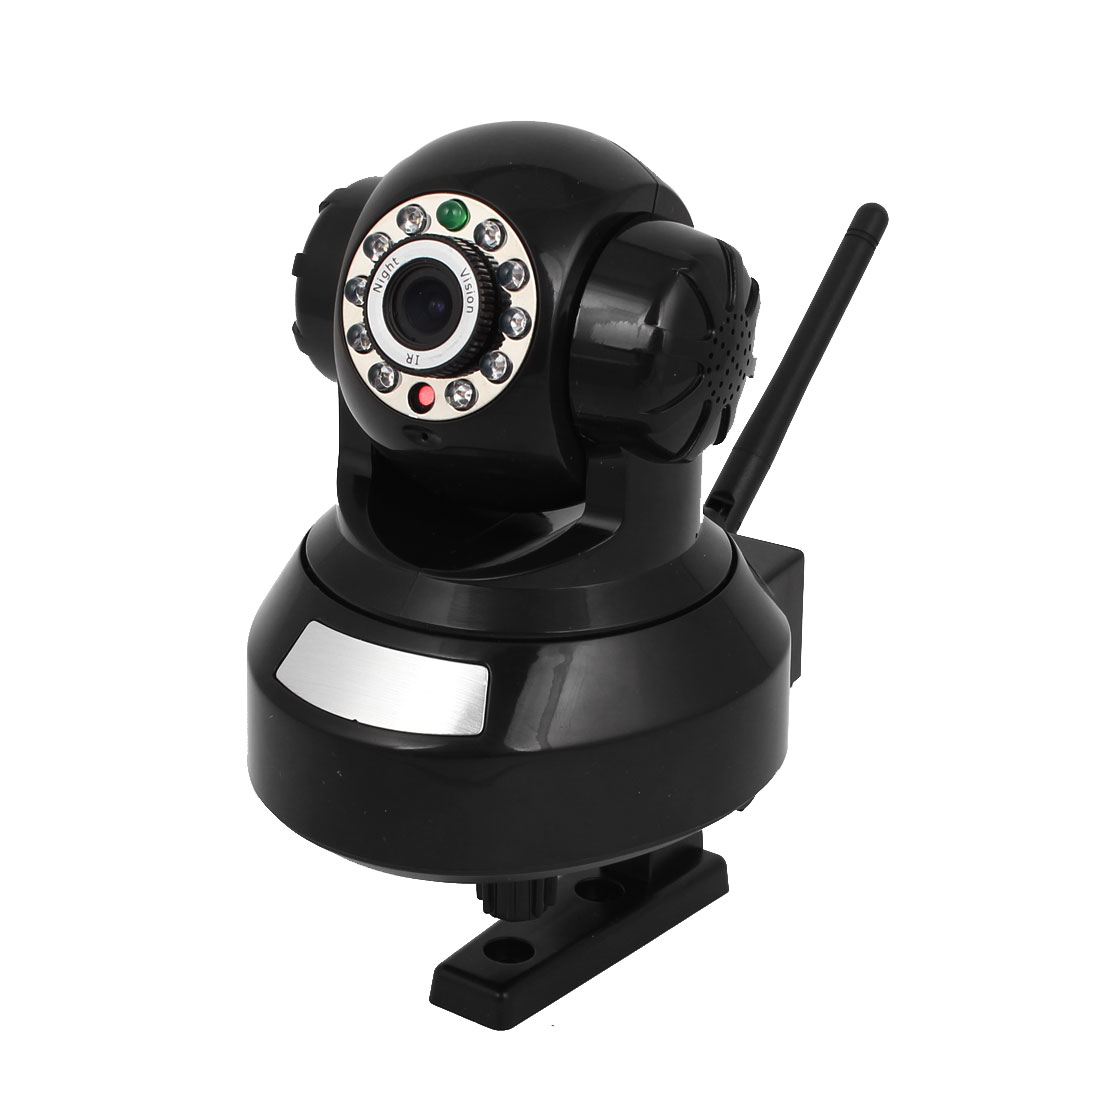 DC 5V 11 LEDs IR Night Vision Wireless Webcam IP Camera Black